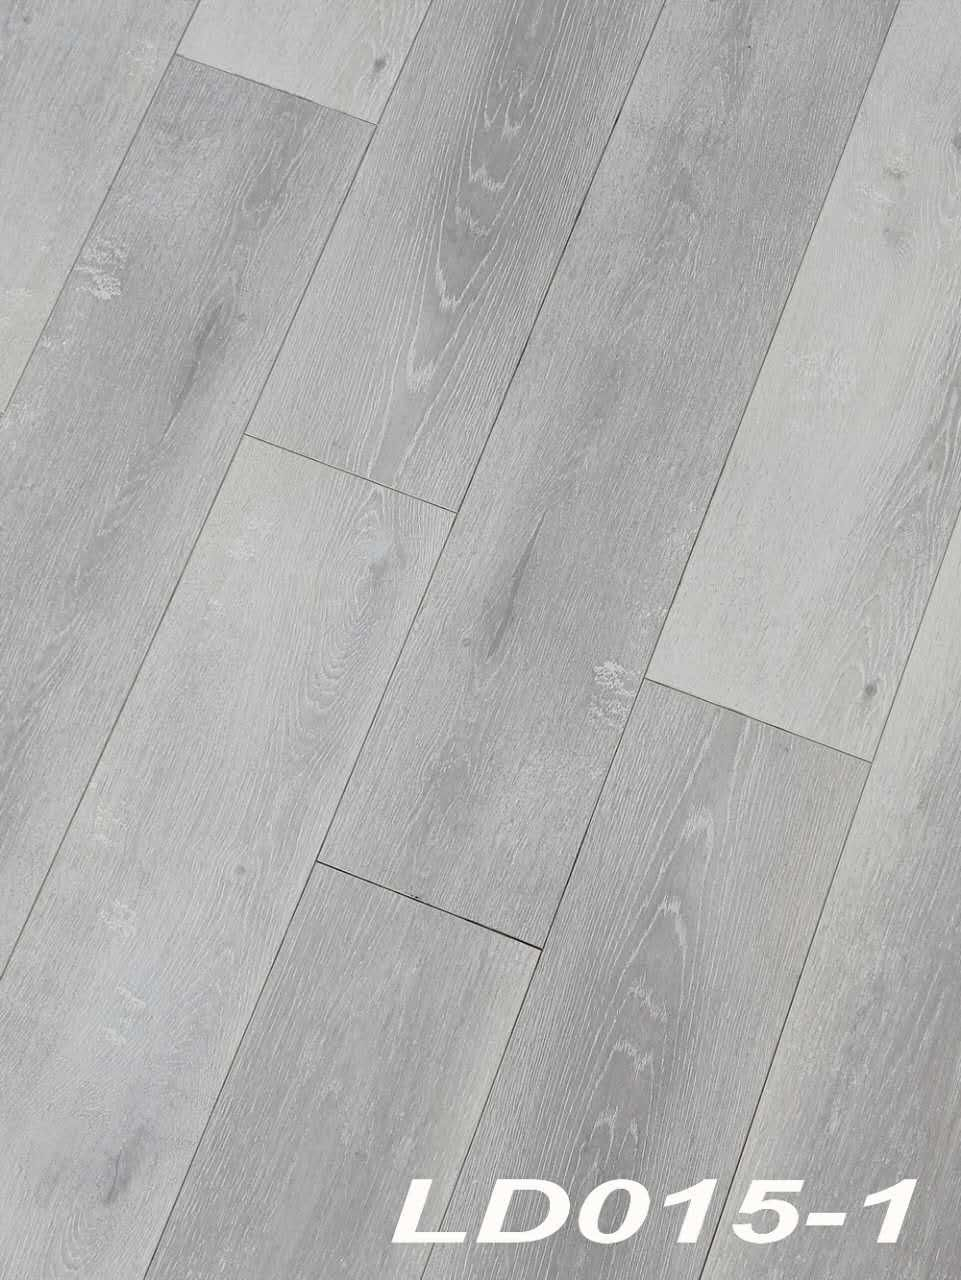 Ideas Grey Shiny Laminate Flooring Grey Shiny Laminate Flooring 12mm High Gloss Laminate Flooring 12mm High Laminate Flooring Grey Laminate Flooring Flooring